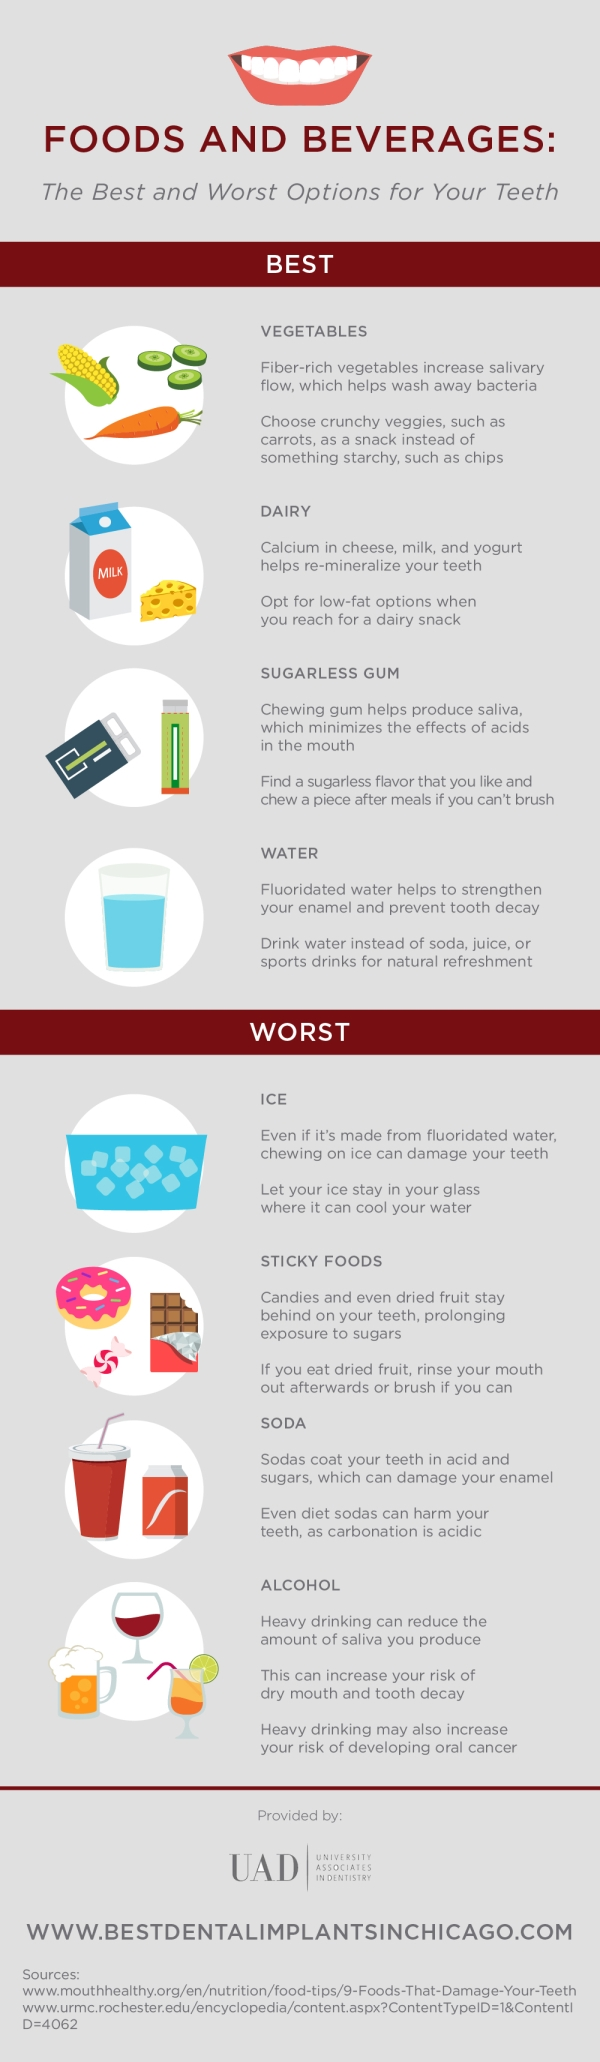 Foods and Beverages That Are Best Friends And Enemies Of Your Teeth - Infographic